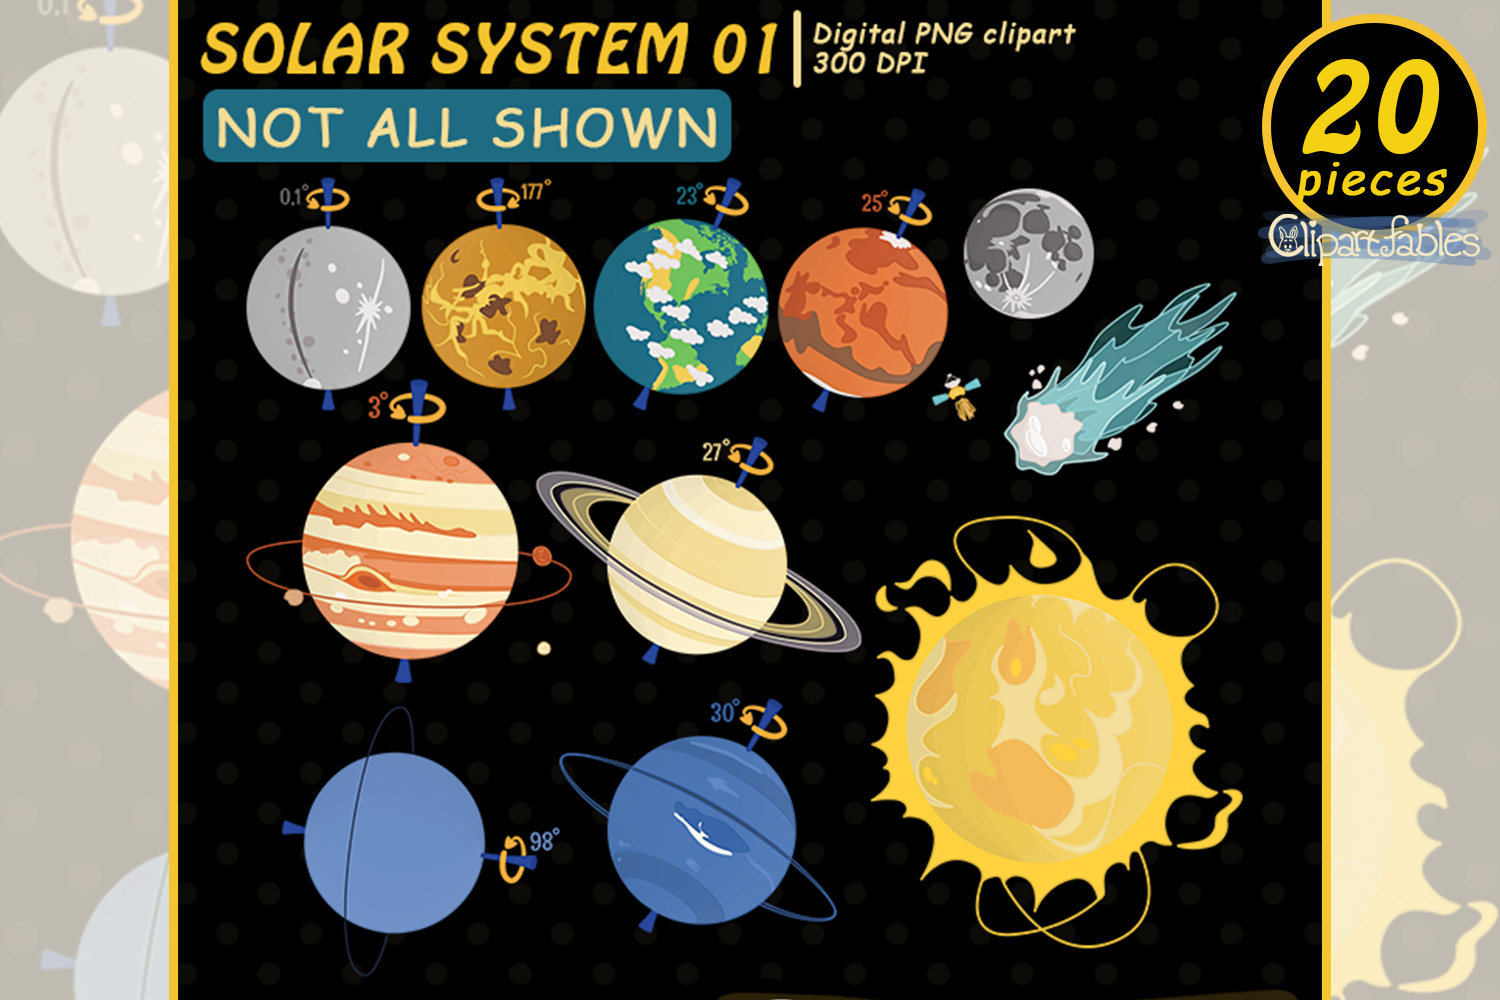 Solar system clipart, Planet clip art, Cute Space design example image 2